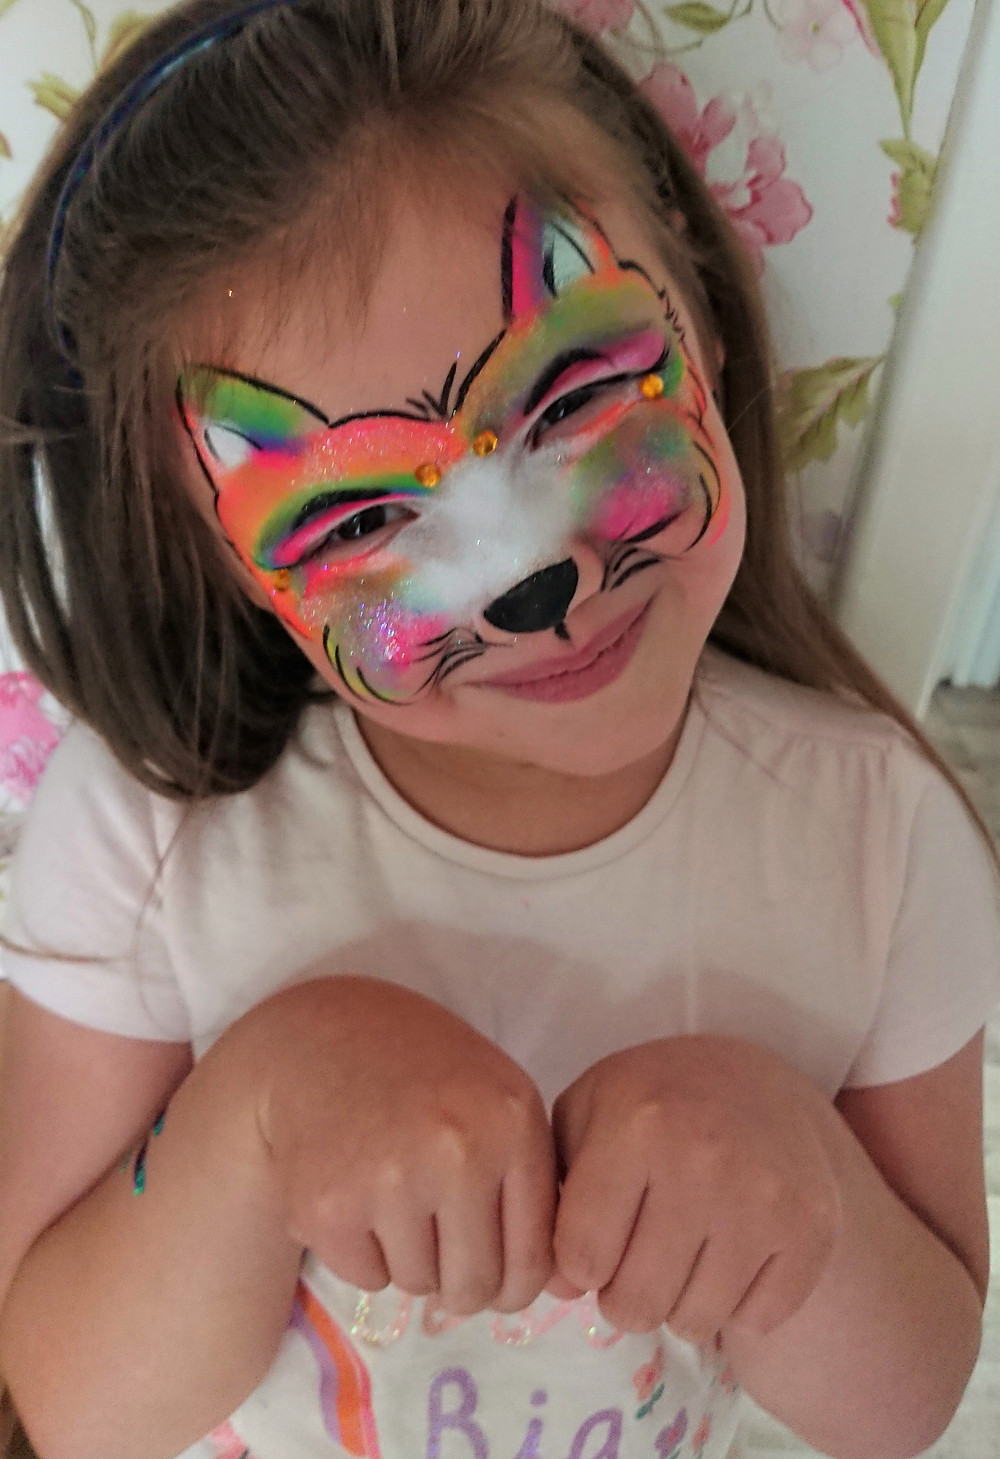 little girl with her face painted as a cat in rainbow colours